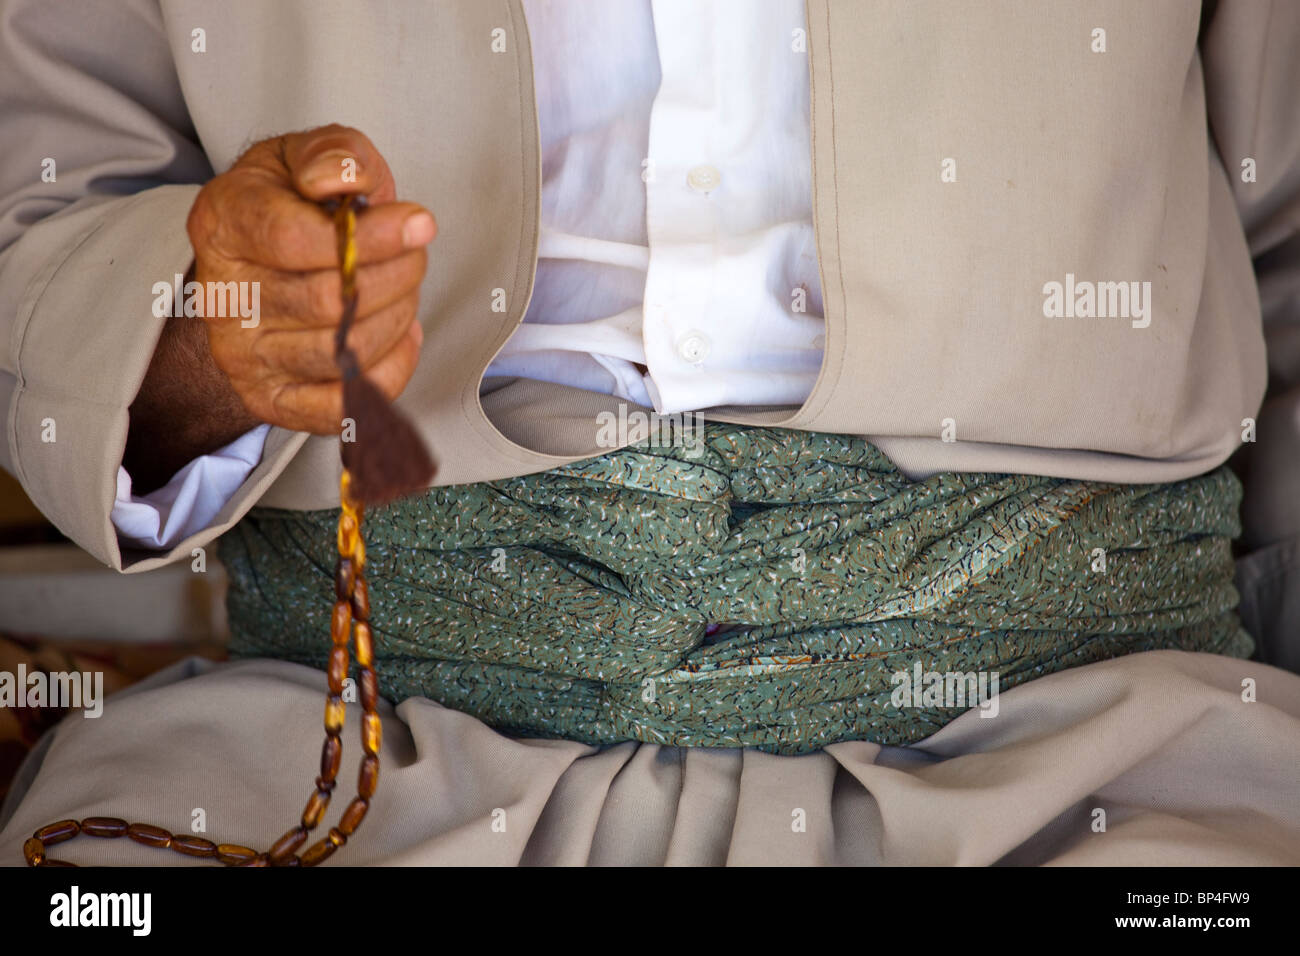 Kurdish Iraqi man counting Muslim prayer beads in Dohuk, Kurdistan, Iraq - Stock Image